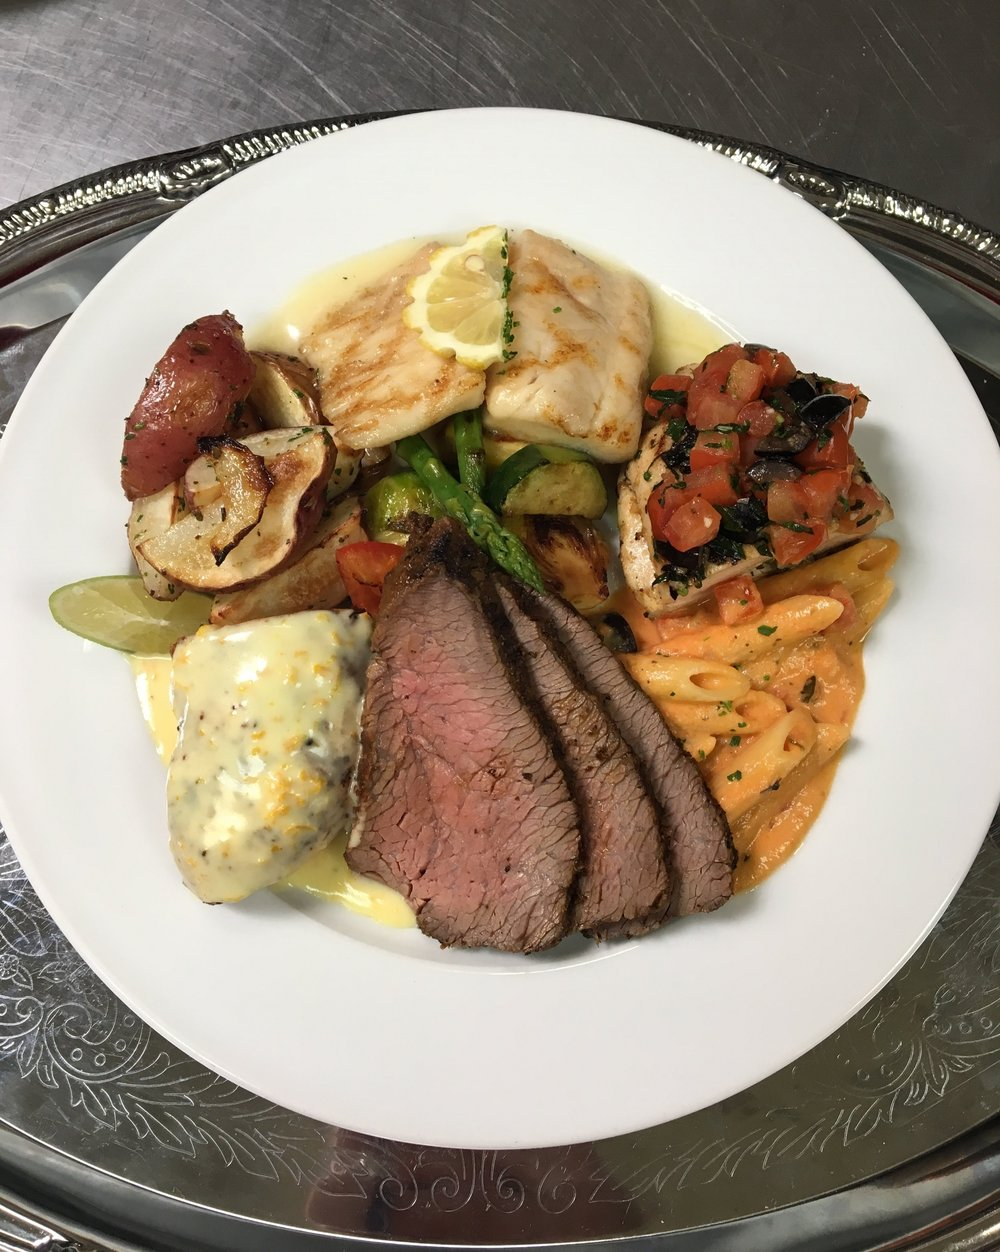 Wood Fired Prime Angus Tri Tip, Tequila Lime Chicken Breast, Herb Chicken Breast, Grilled Tilapia with Lemon Butter Sauce, Penne Mozzarella Pasta, Roasted Red Bud Potatoes, and Grilled Vegetables